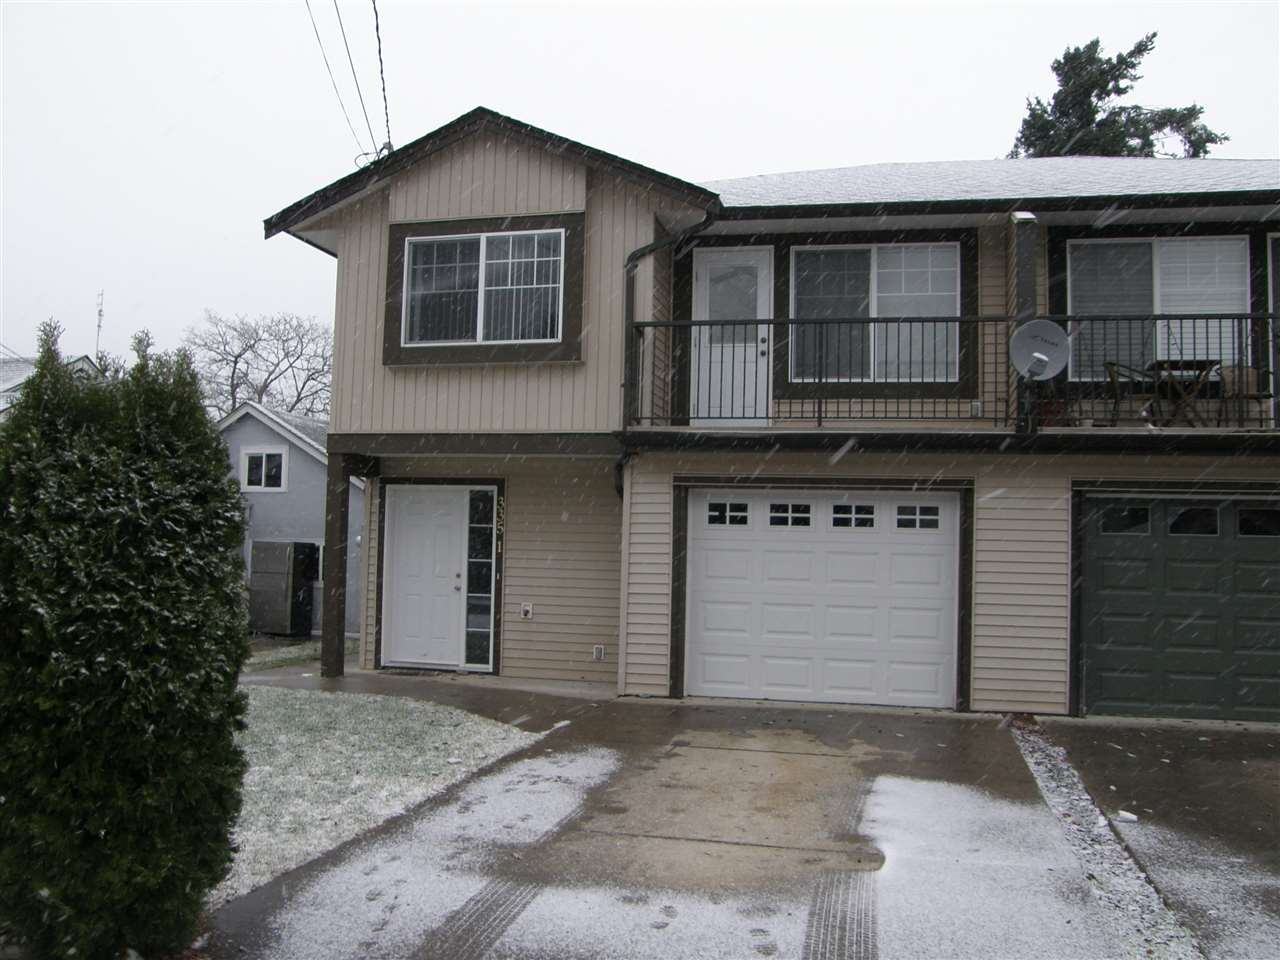 Main Photo: 1 335 HUDSON BAY Street in Hope: Hope Center House 1/2 Duplex for sale : MLS®# R2021275